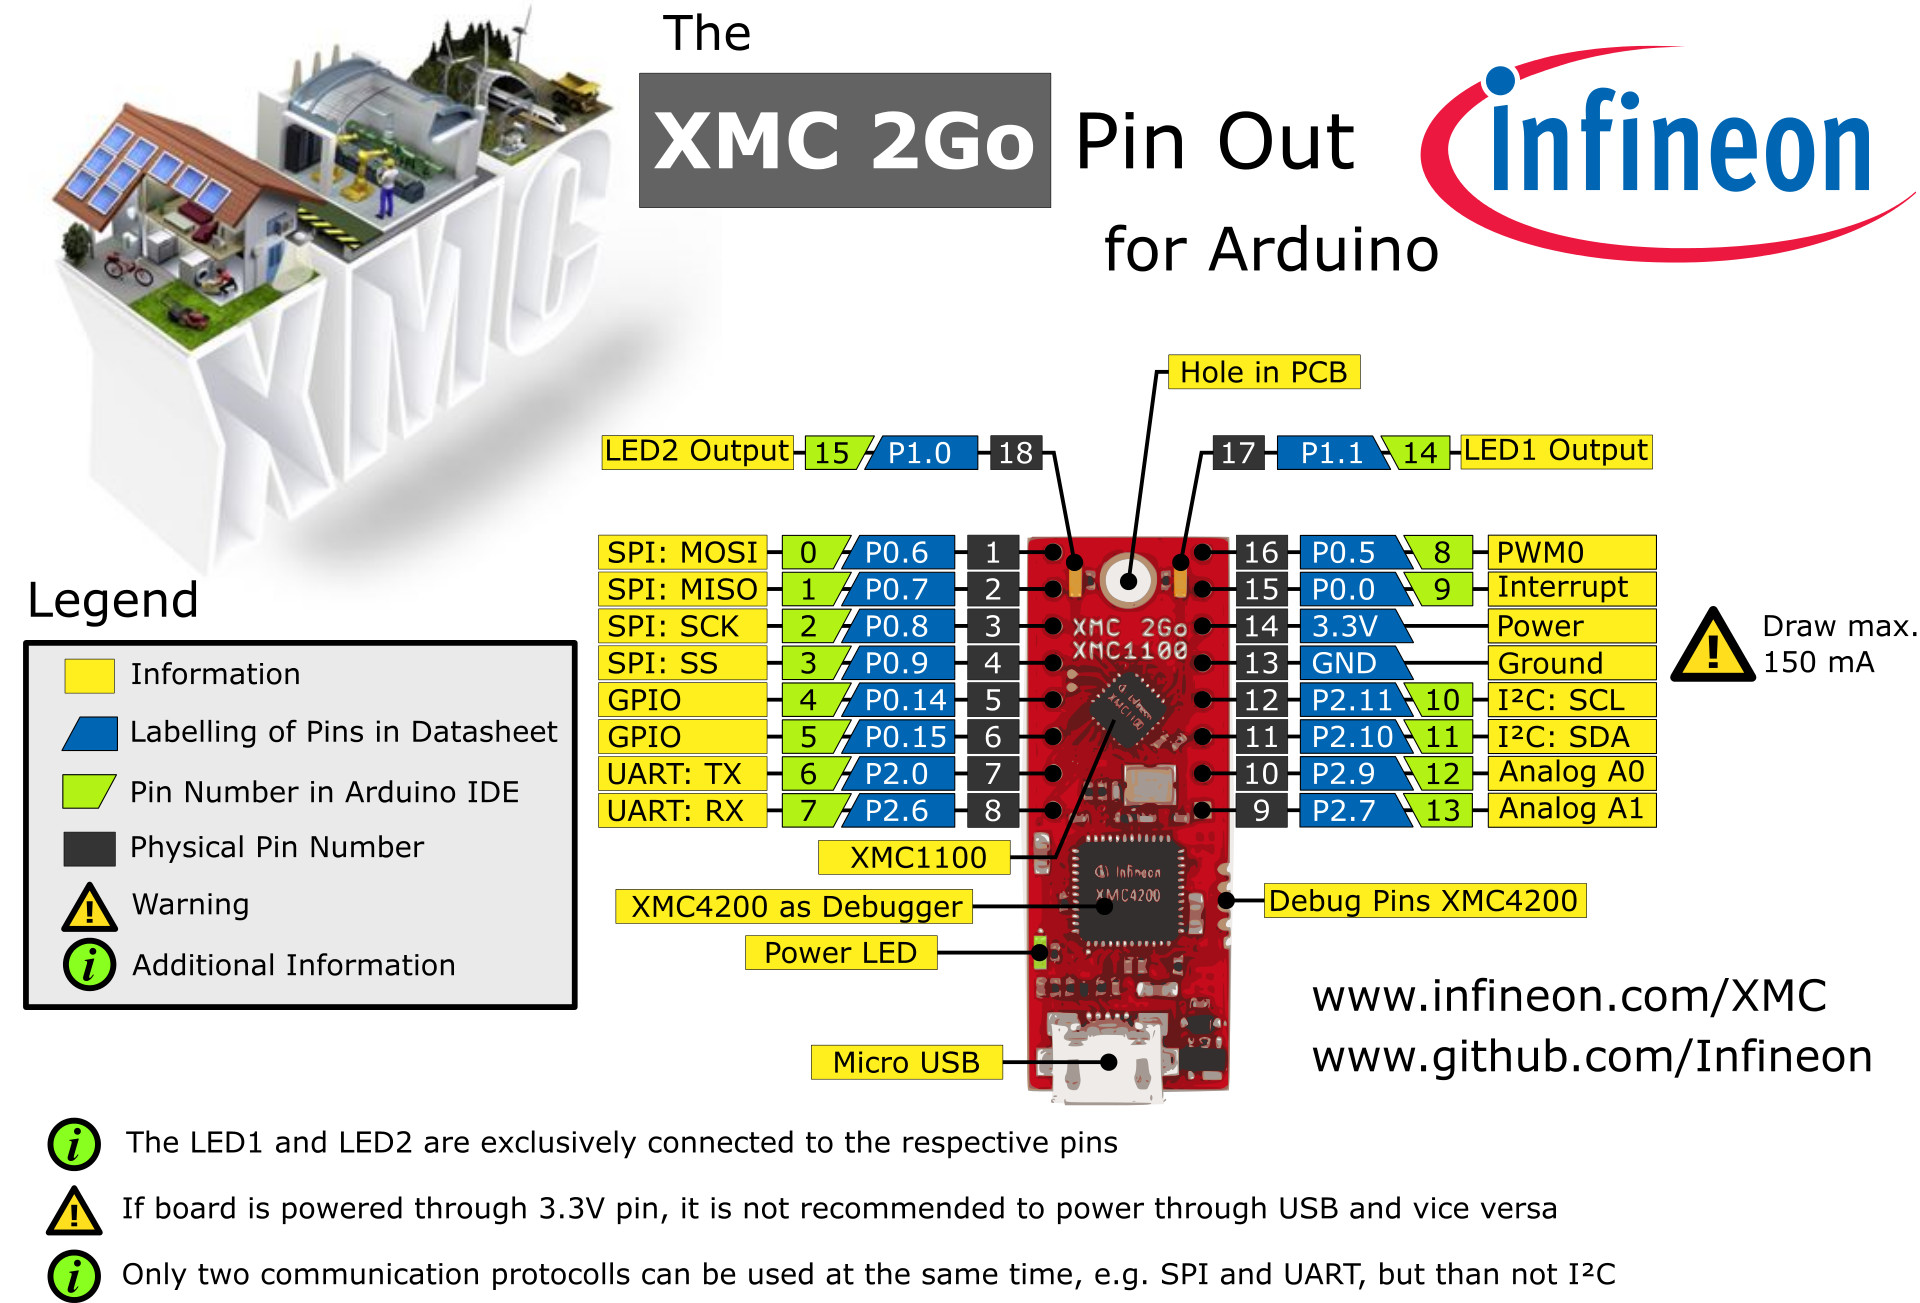 Tx And Rx Pin For Uart In Xmc 2go Issue 23 Infineon Diagram As Shown The Attached Image